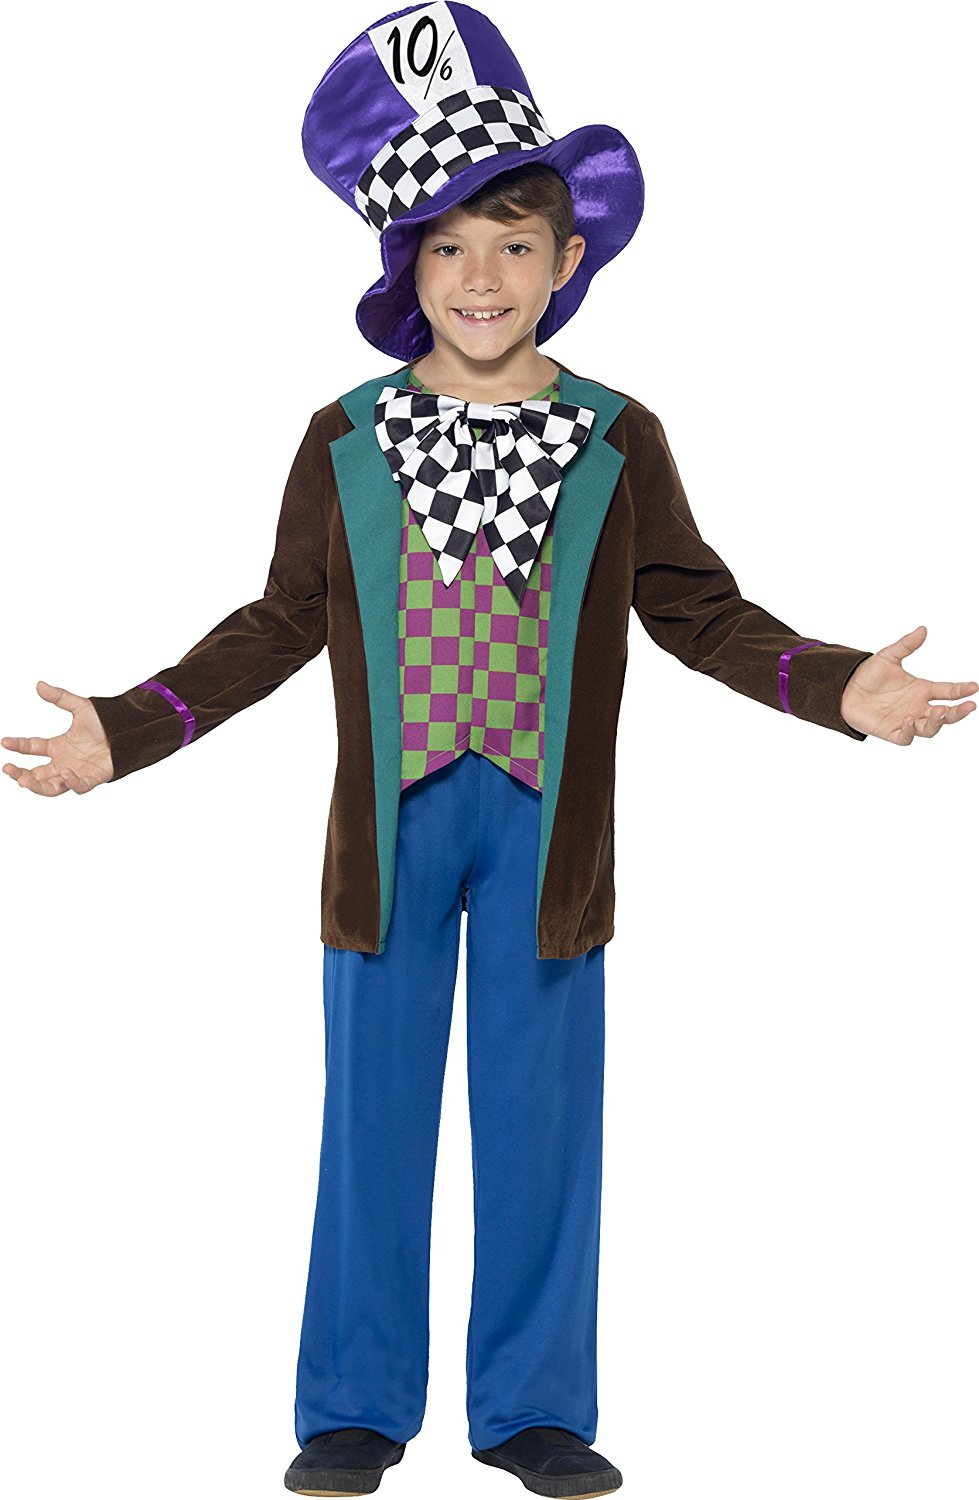 Mad Hatter costume child 42842